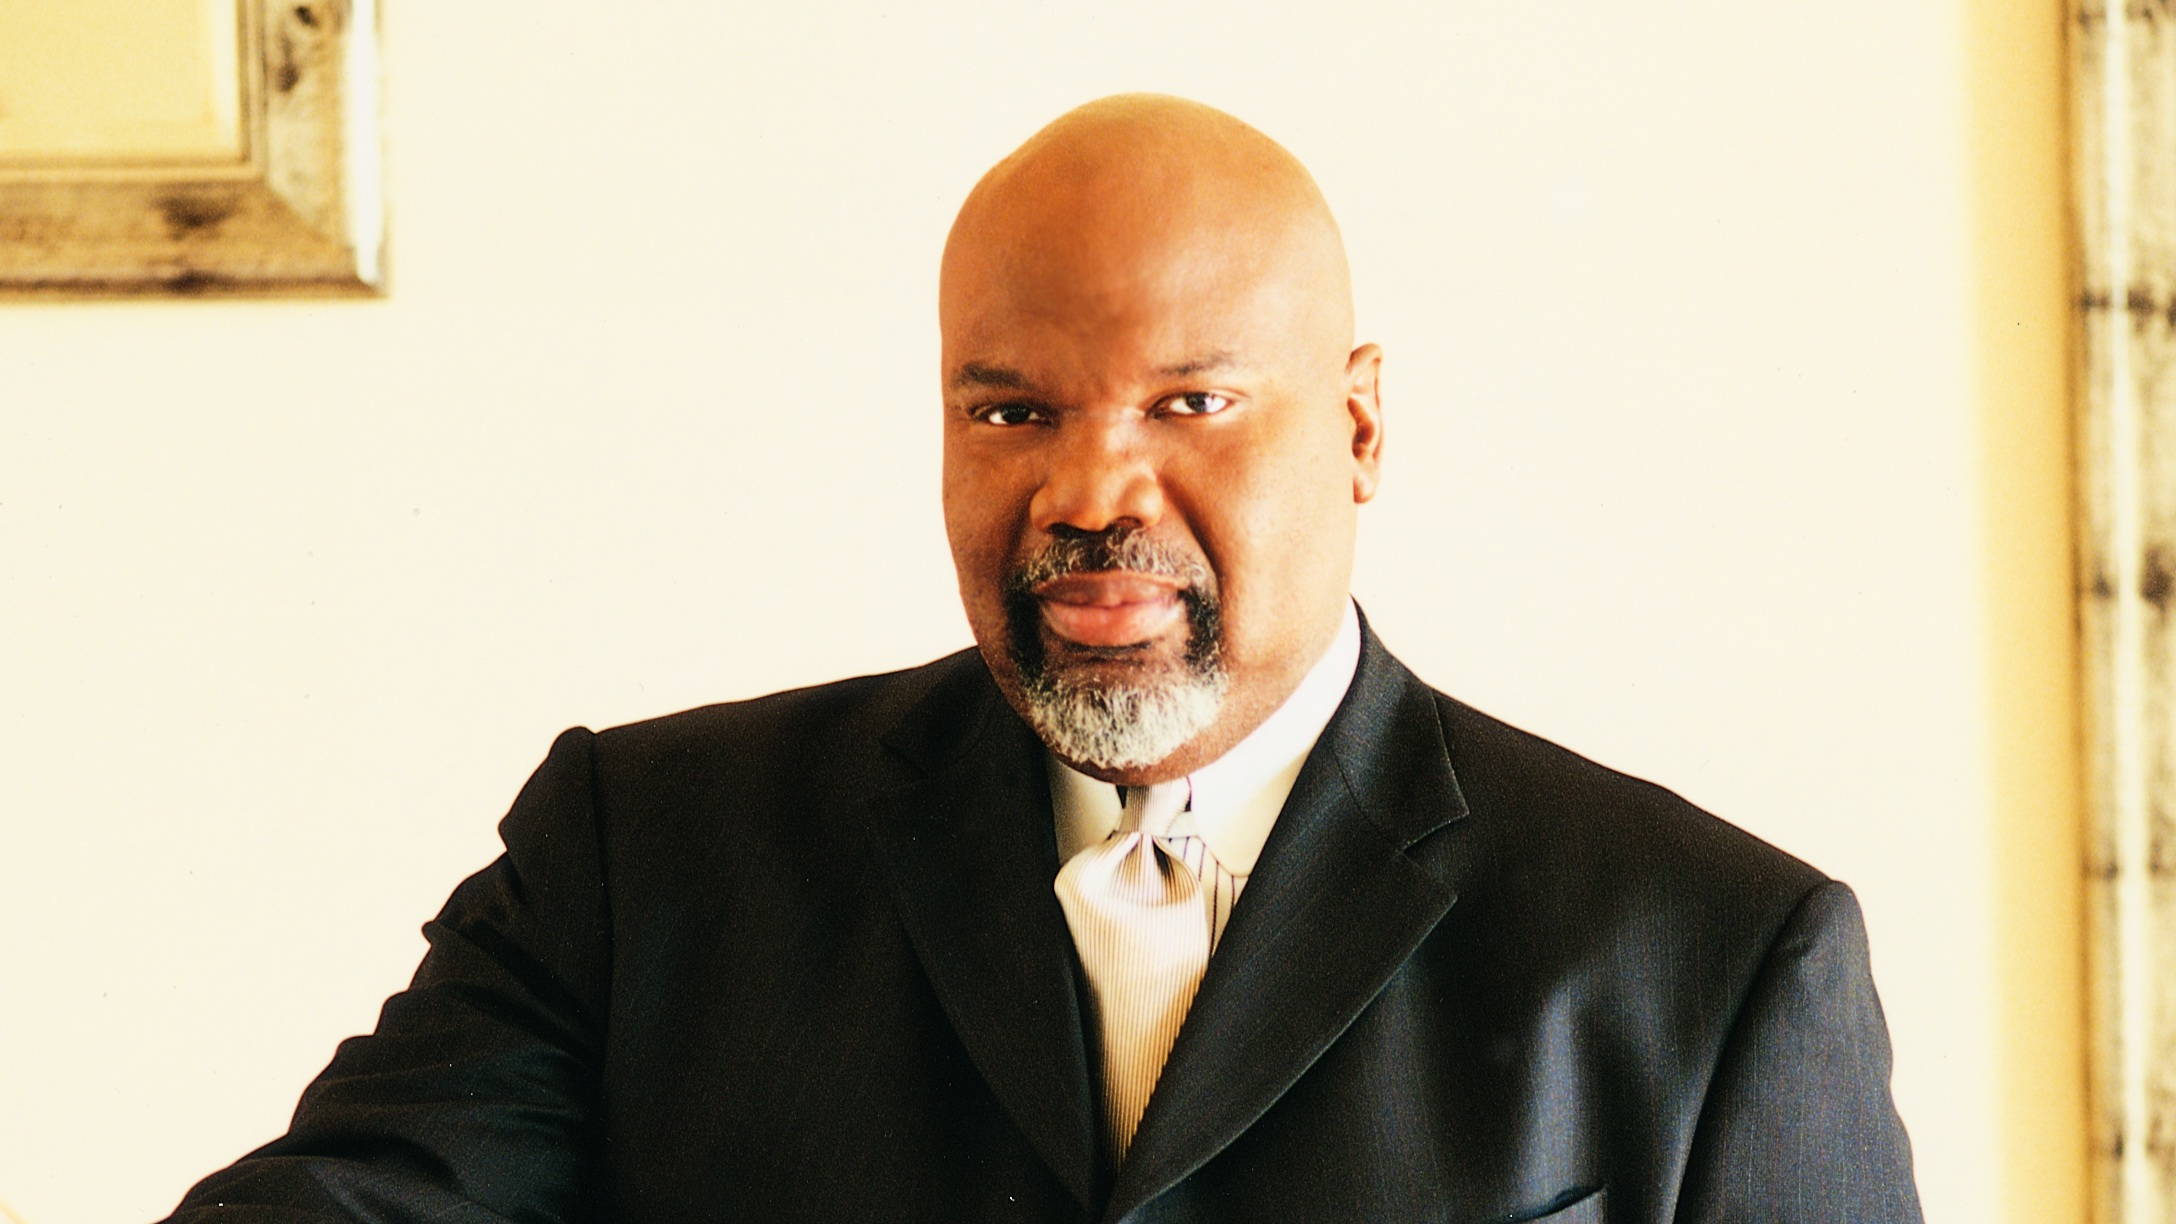 Book Review: Reposition Yourself: Living Life Without Limits, by T.D. Jakes